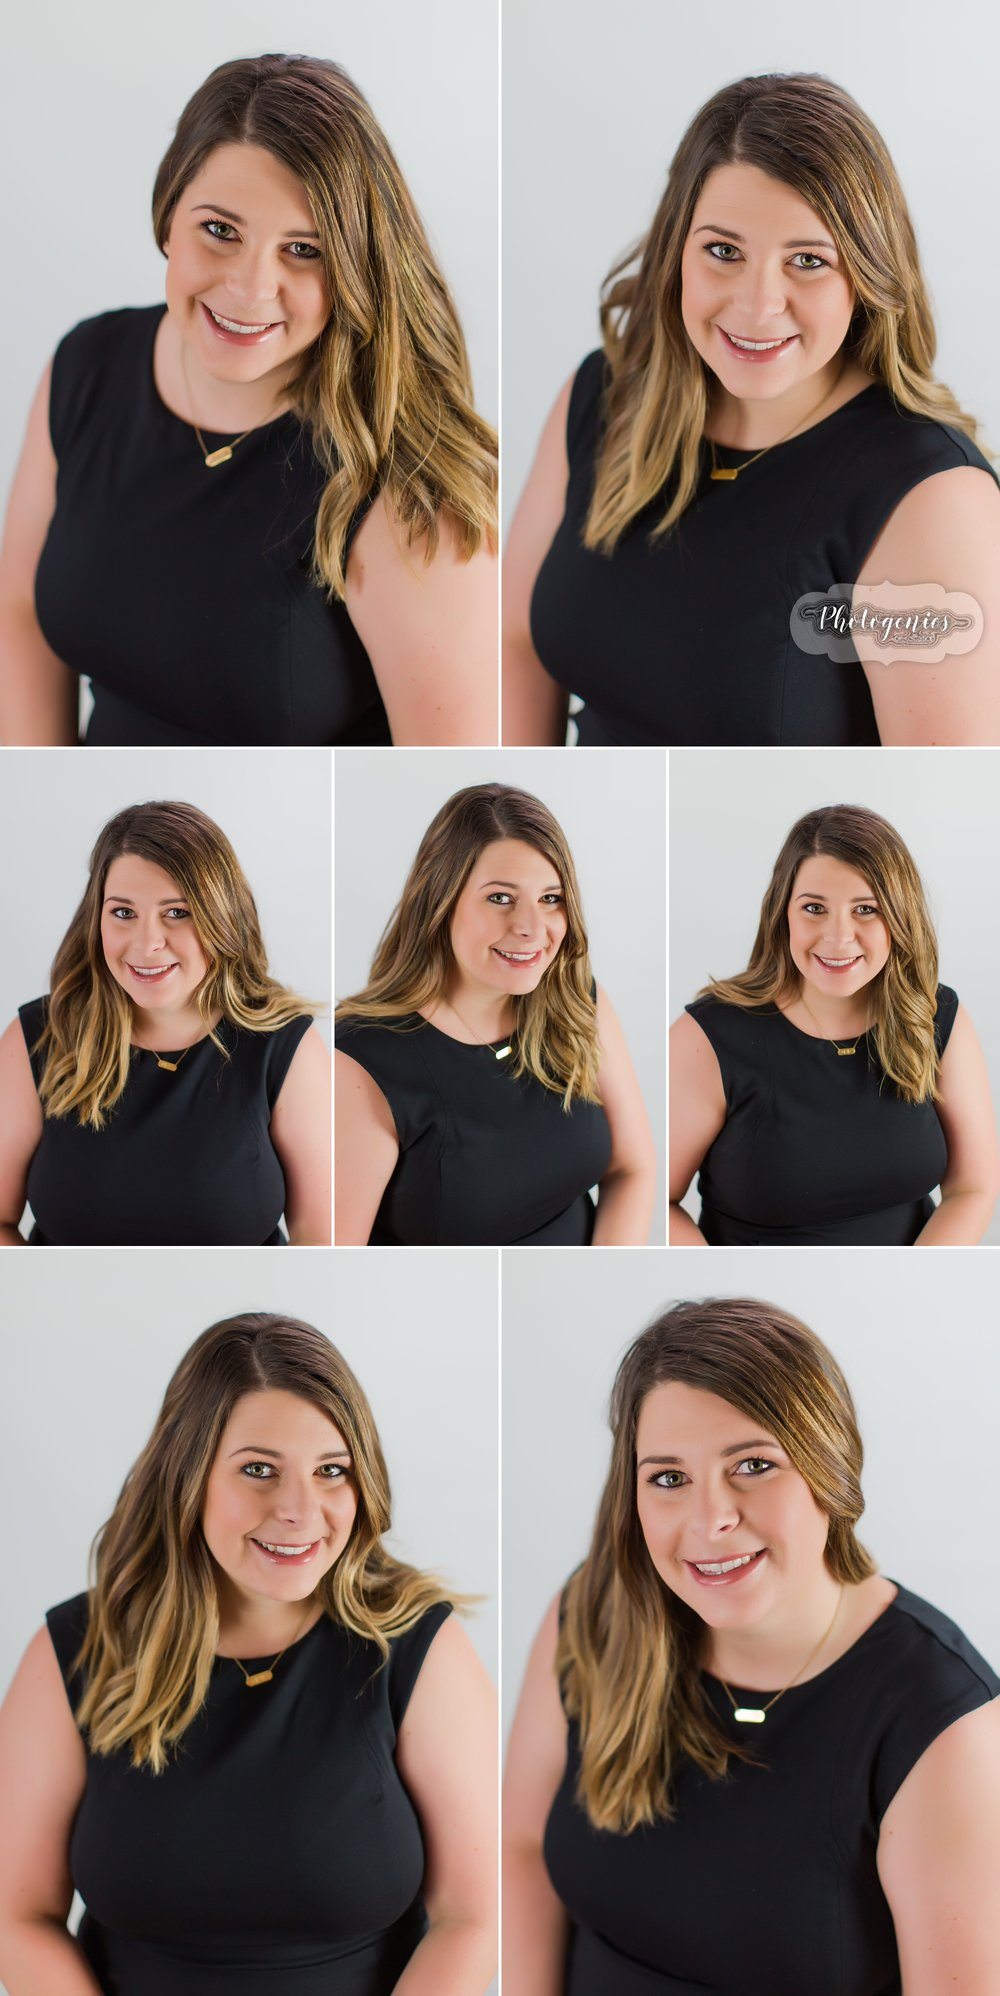 business_head_shots_ideas_indoor_professional_photography_white_background